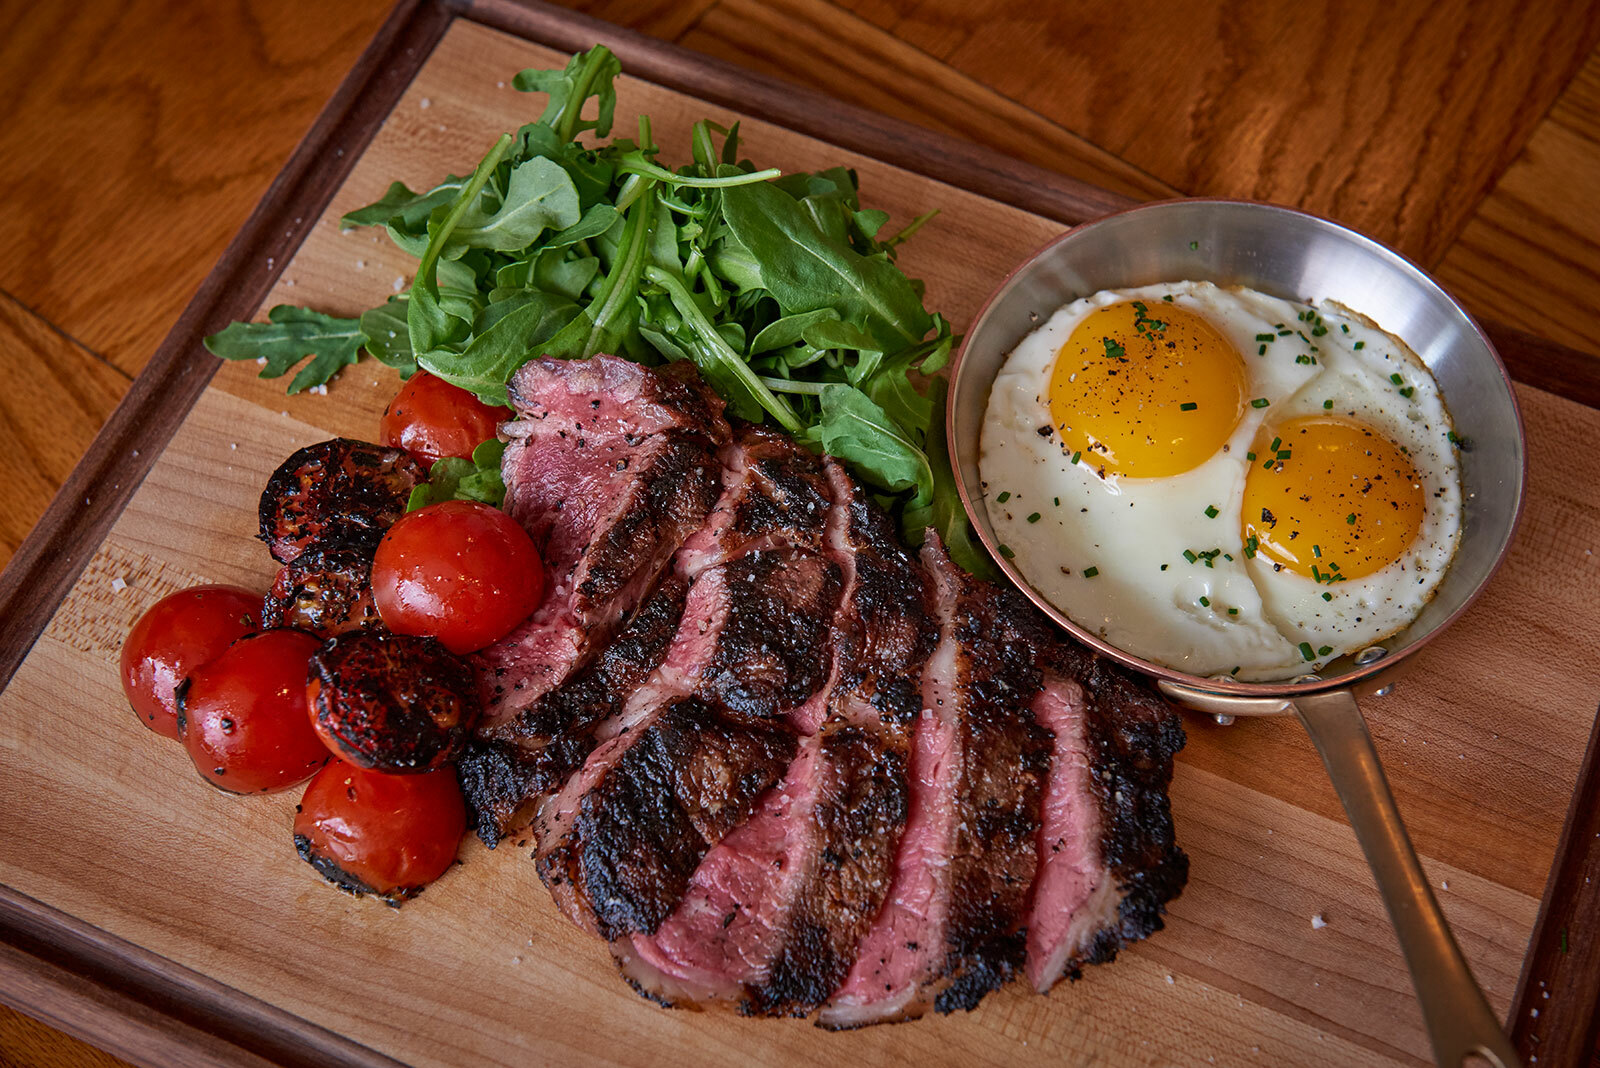 Main Street Tavern's grilled hanger steak with crispy fingerling potatoes and sunny side up eggs.